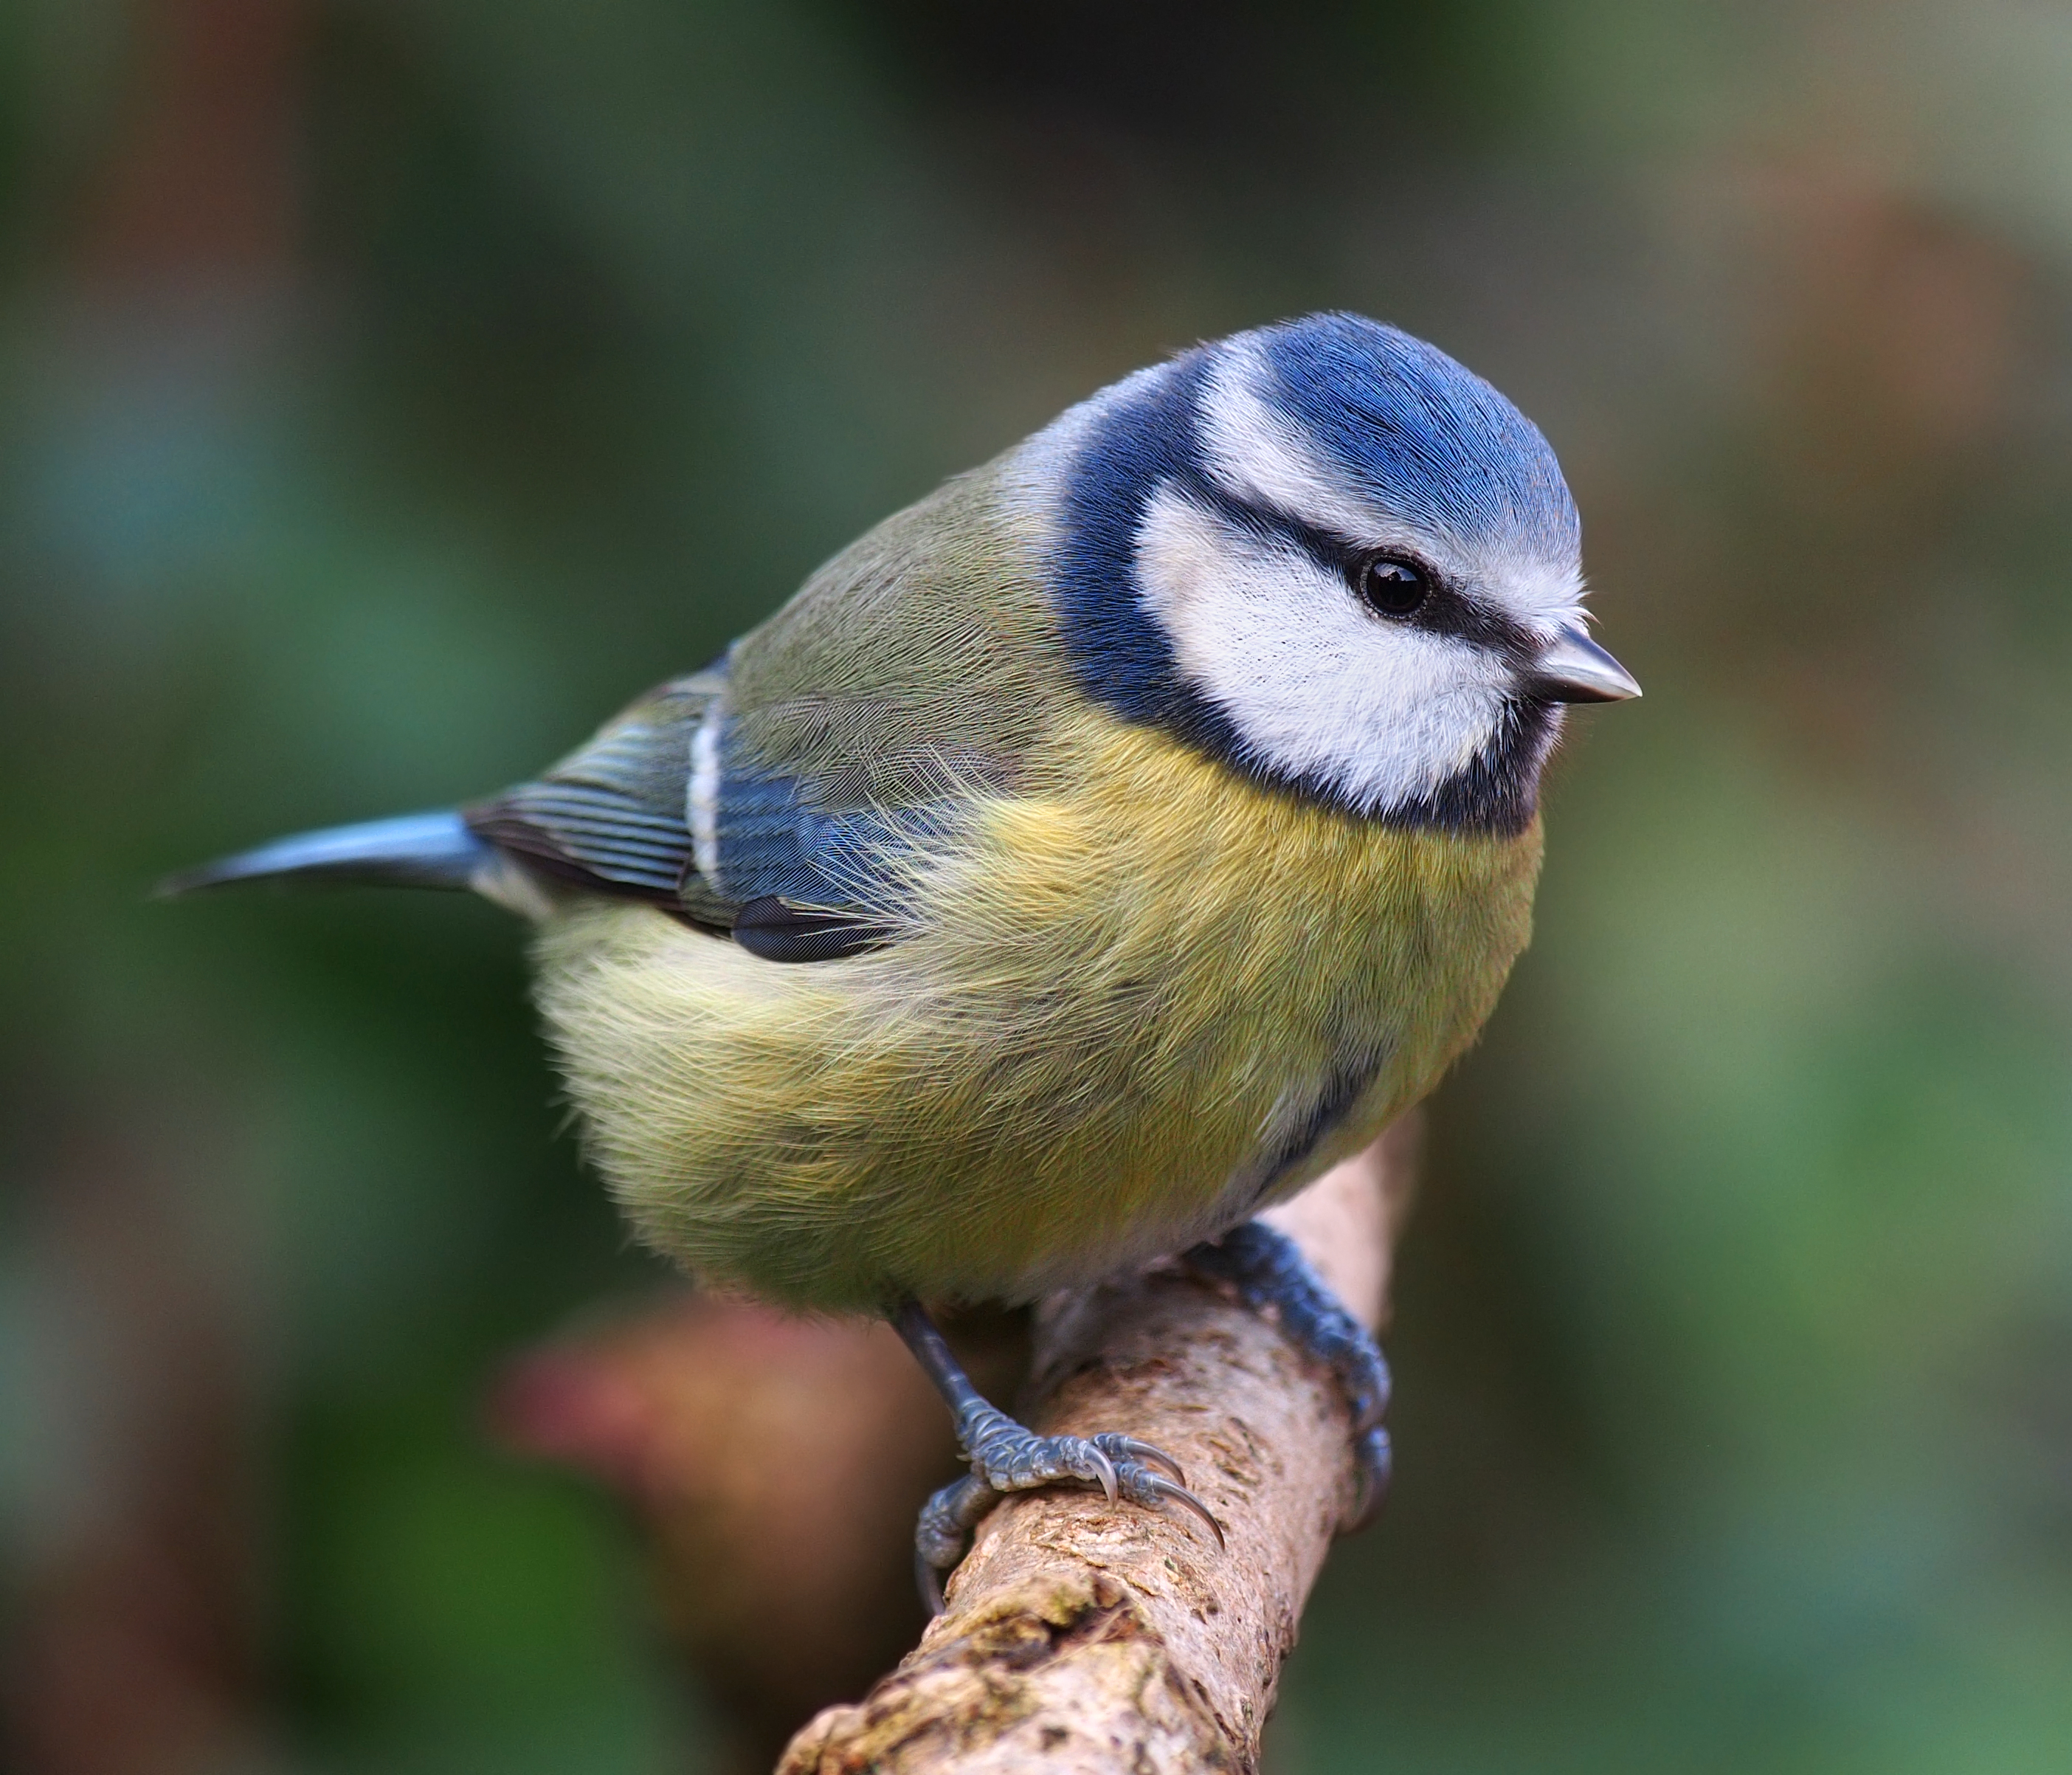 tit close up